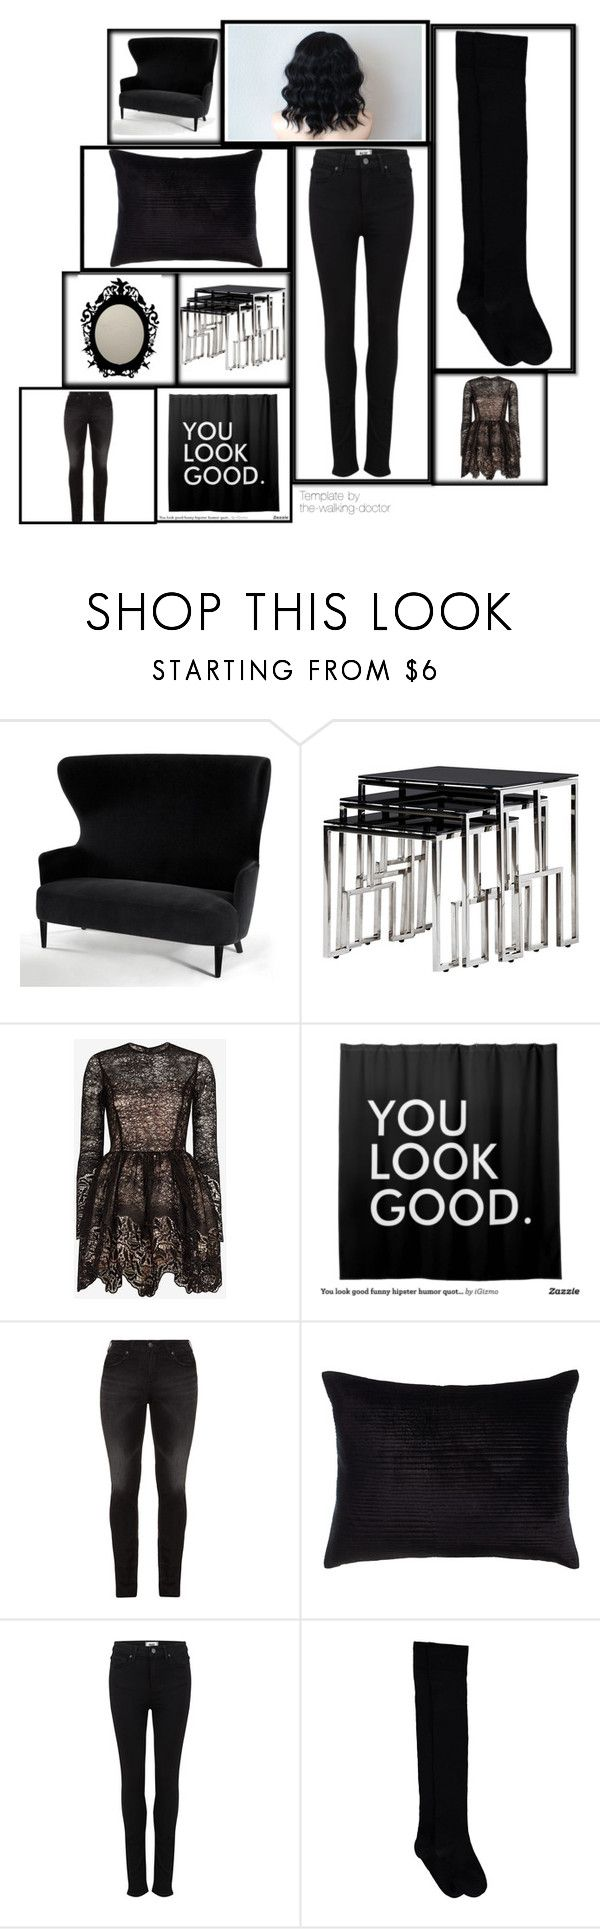 """Без названия #28"" by genri ❤ liked on Polyvore featuring Tom Dixon, Alexis, Humör, Silver Jeans Co., Callisto Home, Paige Denim, women's clothing, women's fashion, women and female"